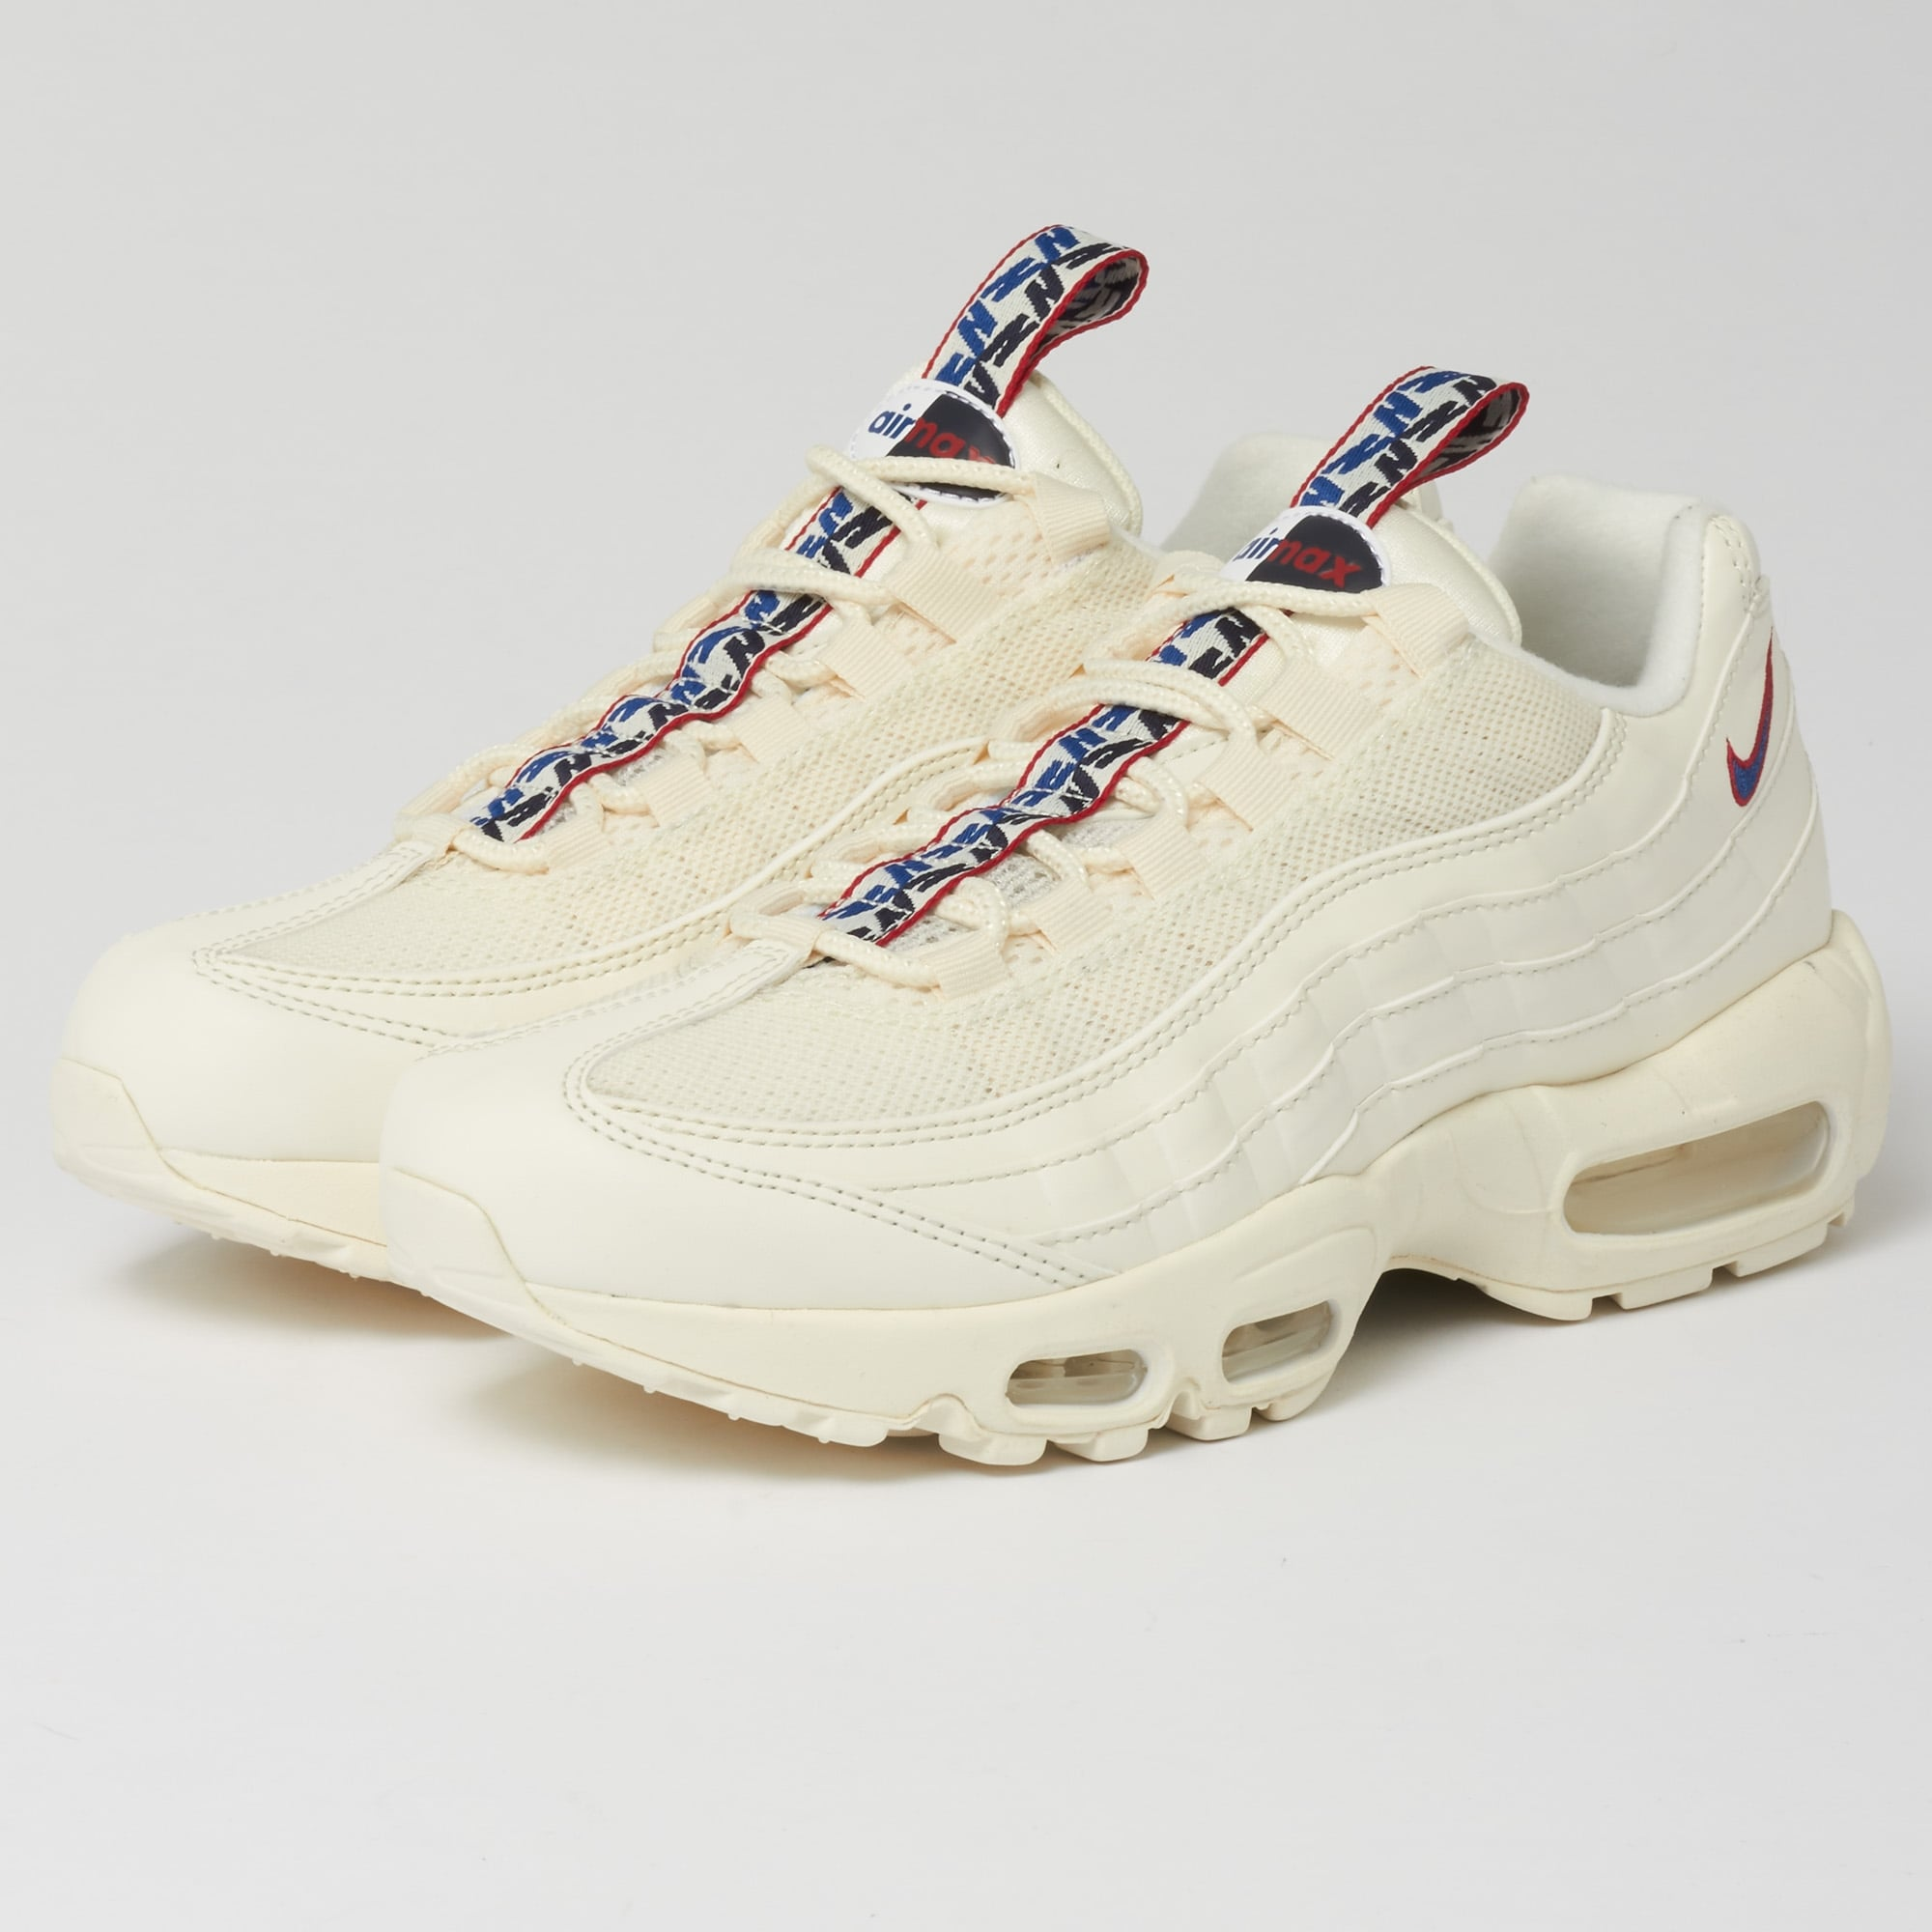 Nike Air Max 95 Des Femmes De Bottes Rouges Aile photos de réduction clairance excellente amazon pas cher 8YhS1